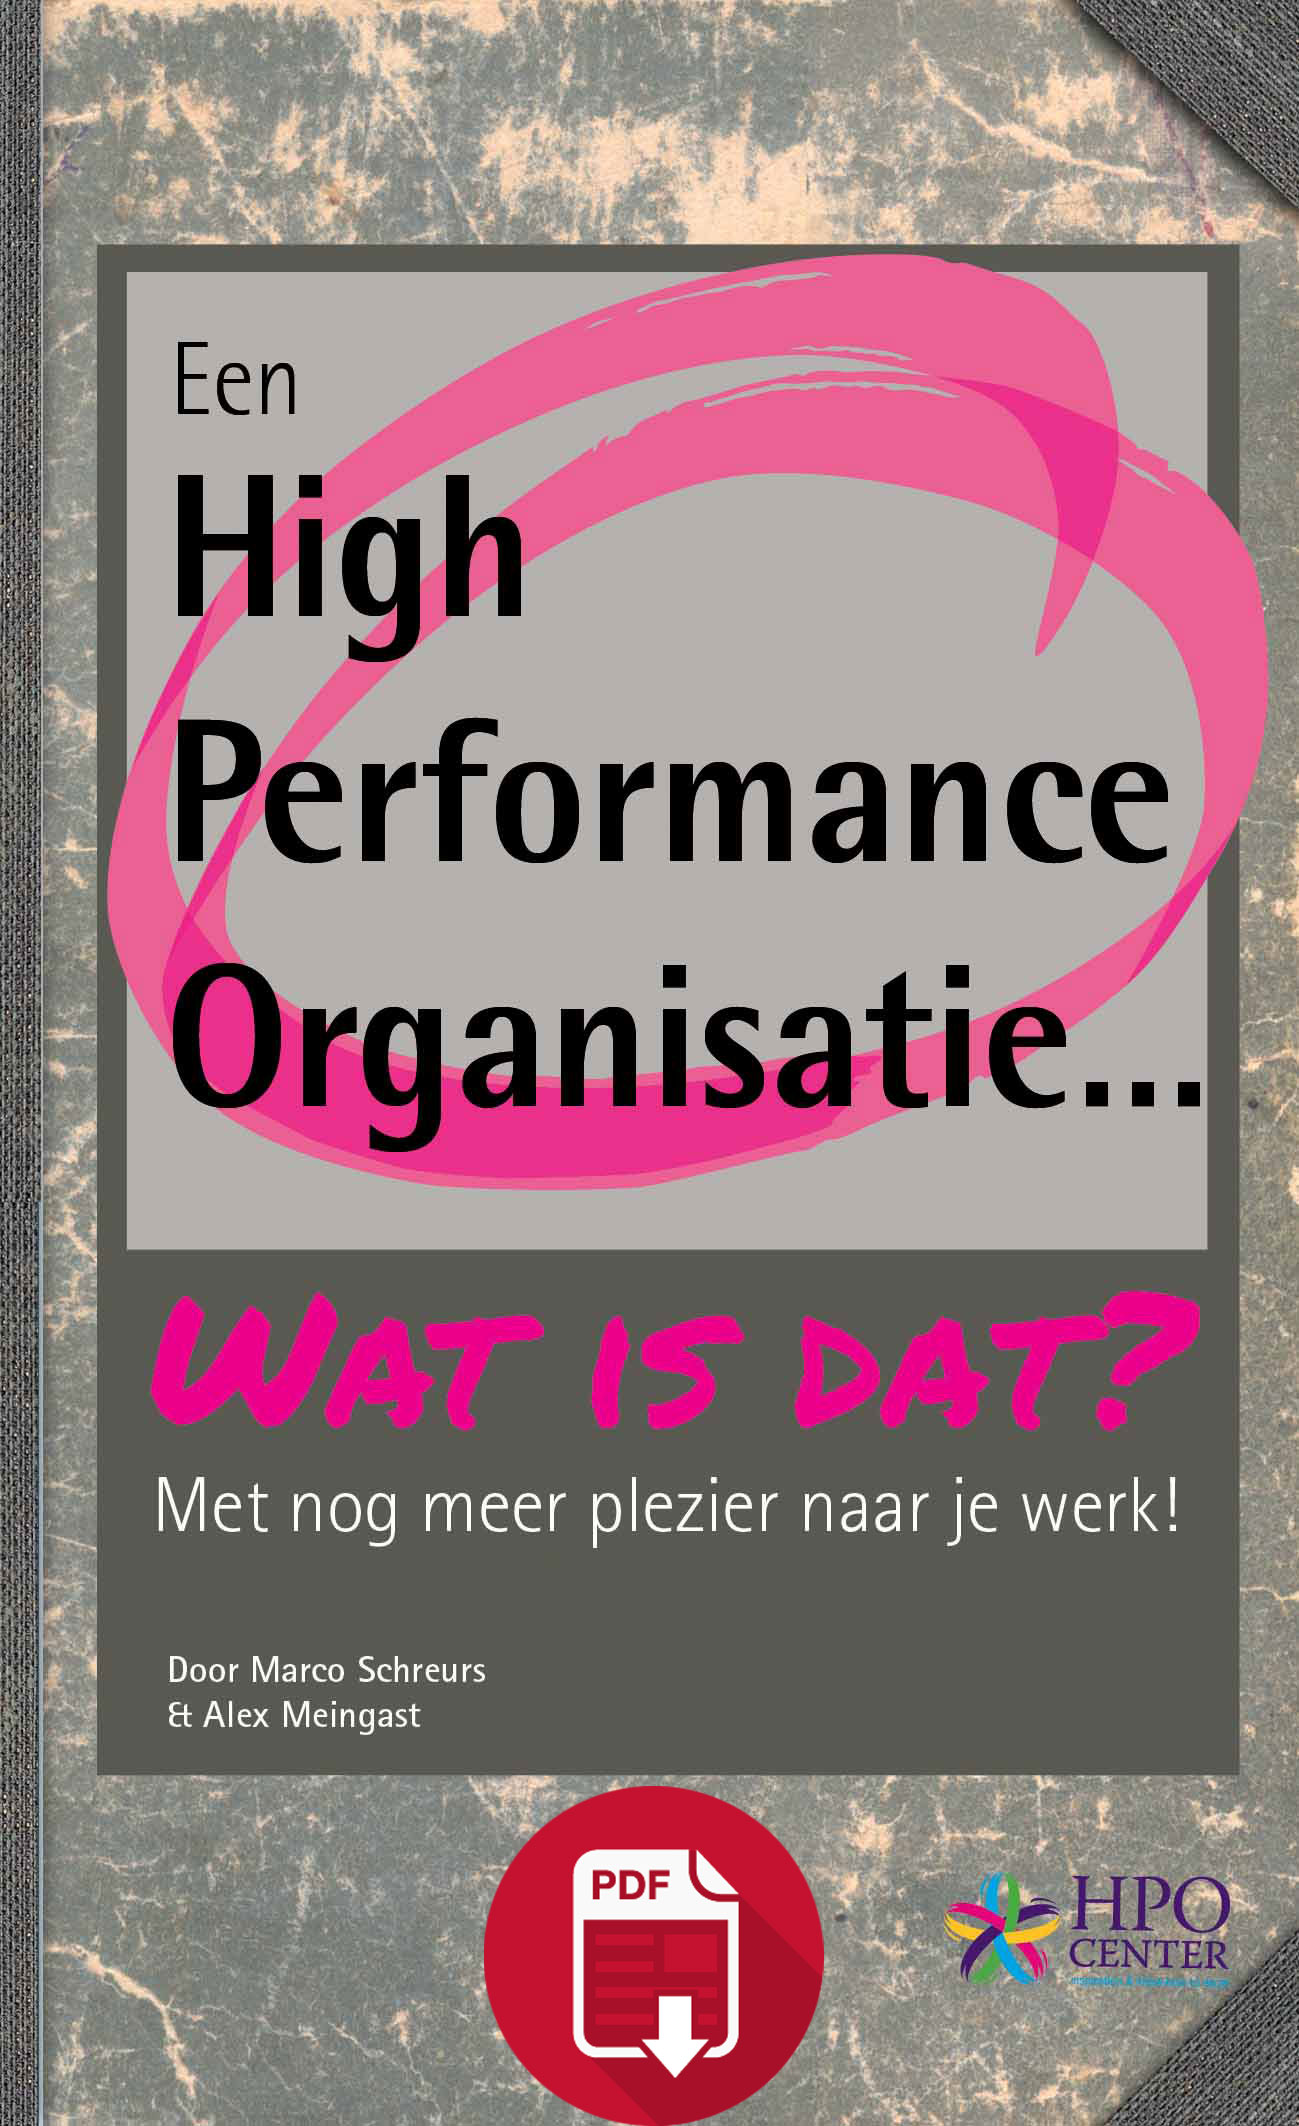 Download Een High Performance Organisatie - wat is dat